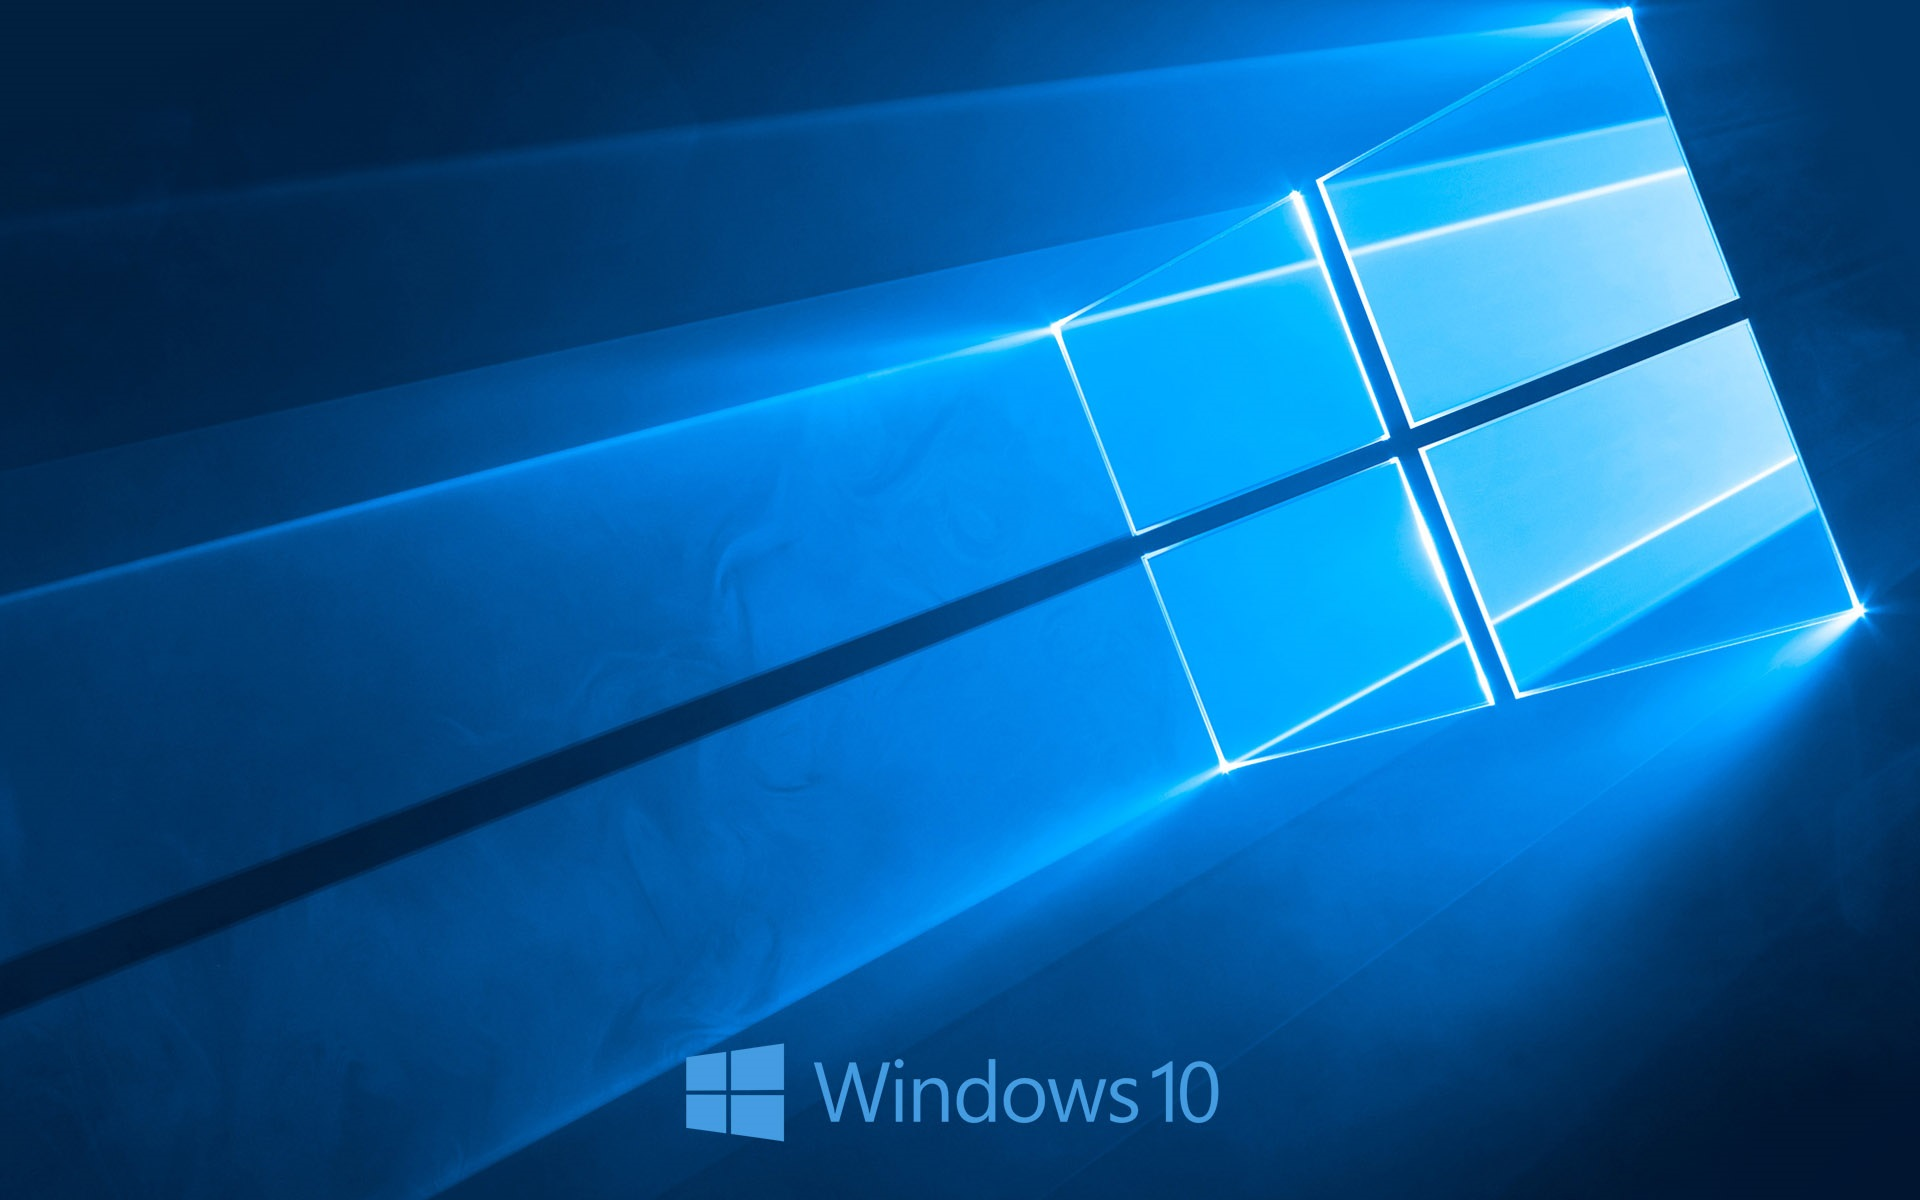 Papéis De Parede Logotipo Do Windows 10 Do Sistema, Fundo